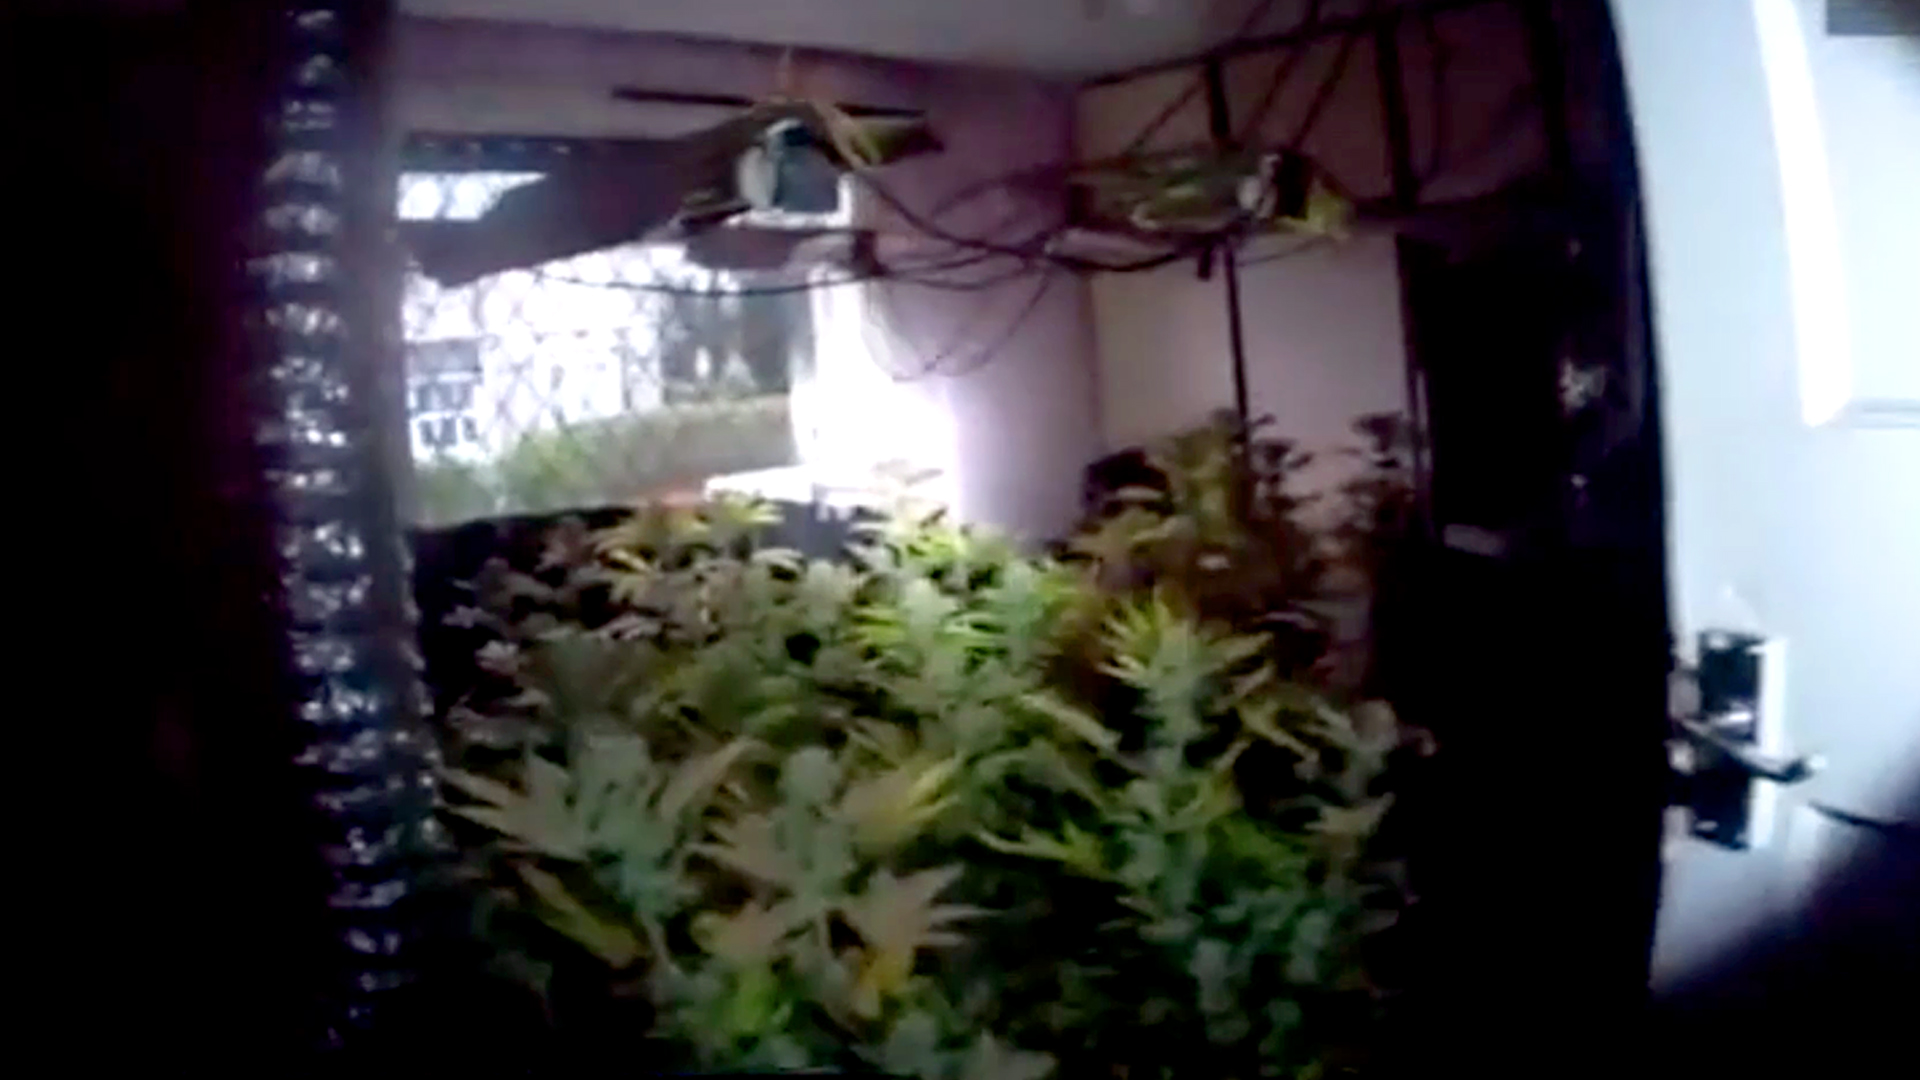 VIDEO: Hash Snagged: Police Bust $140,000 Cannabis Farm